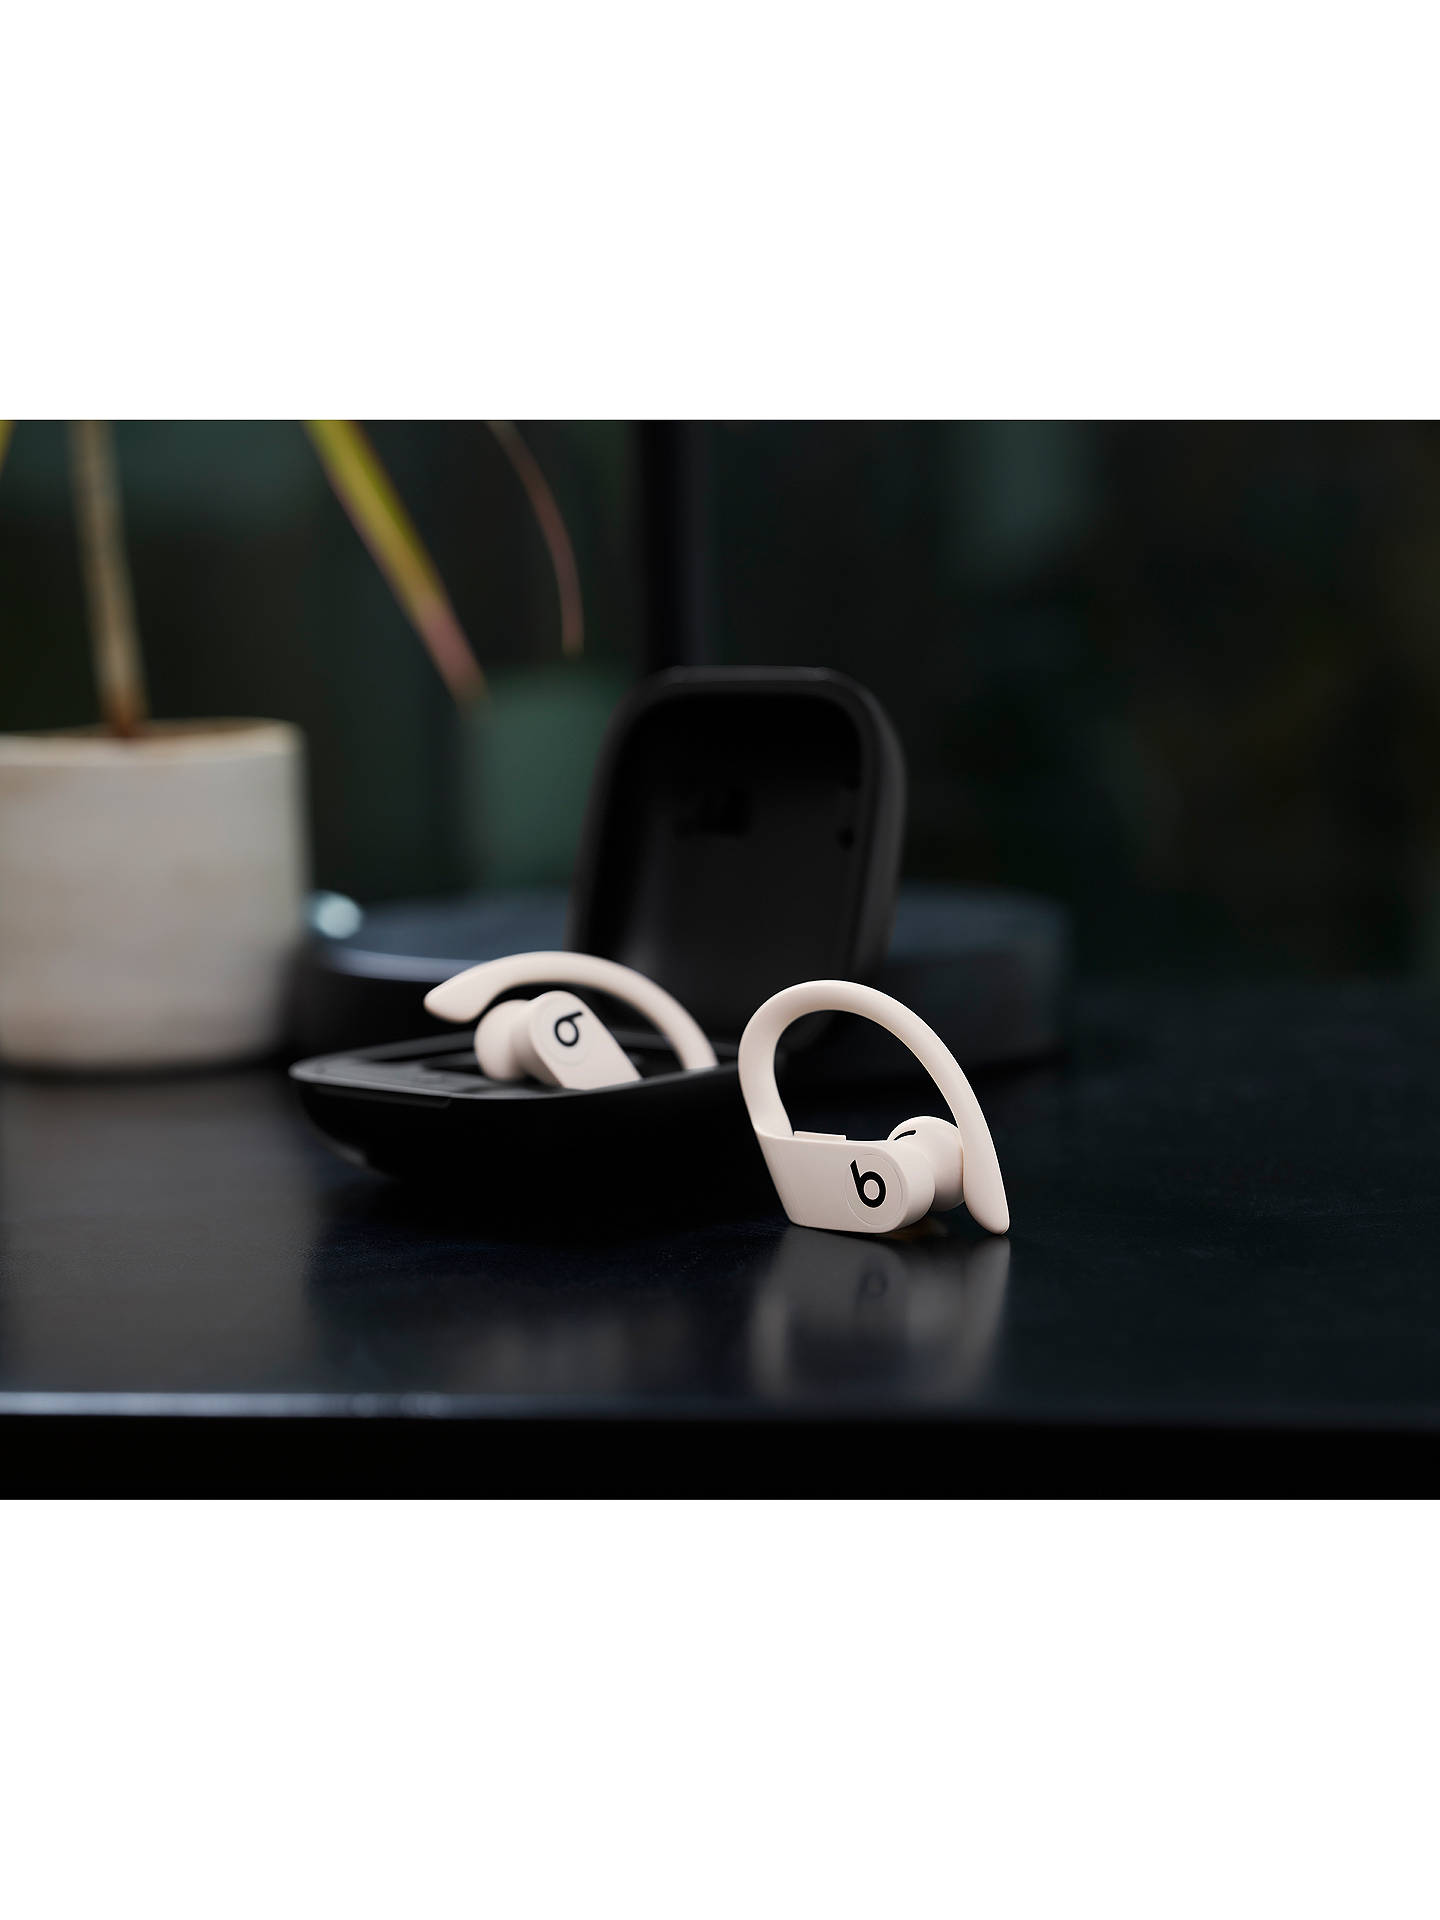 Buy Powerbeats Pro True Wireless Bluetooth In-Ear Sport Headphones with Mic/Remote, Ivory Online at johnlewis.com